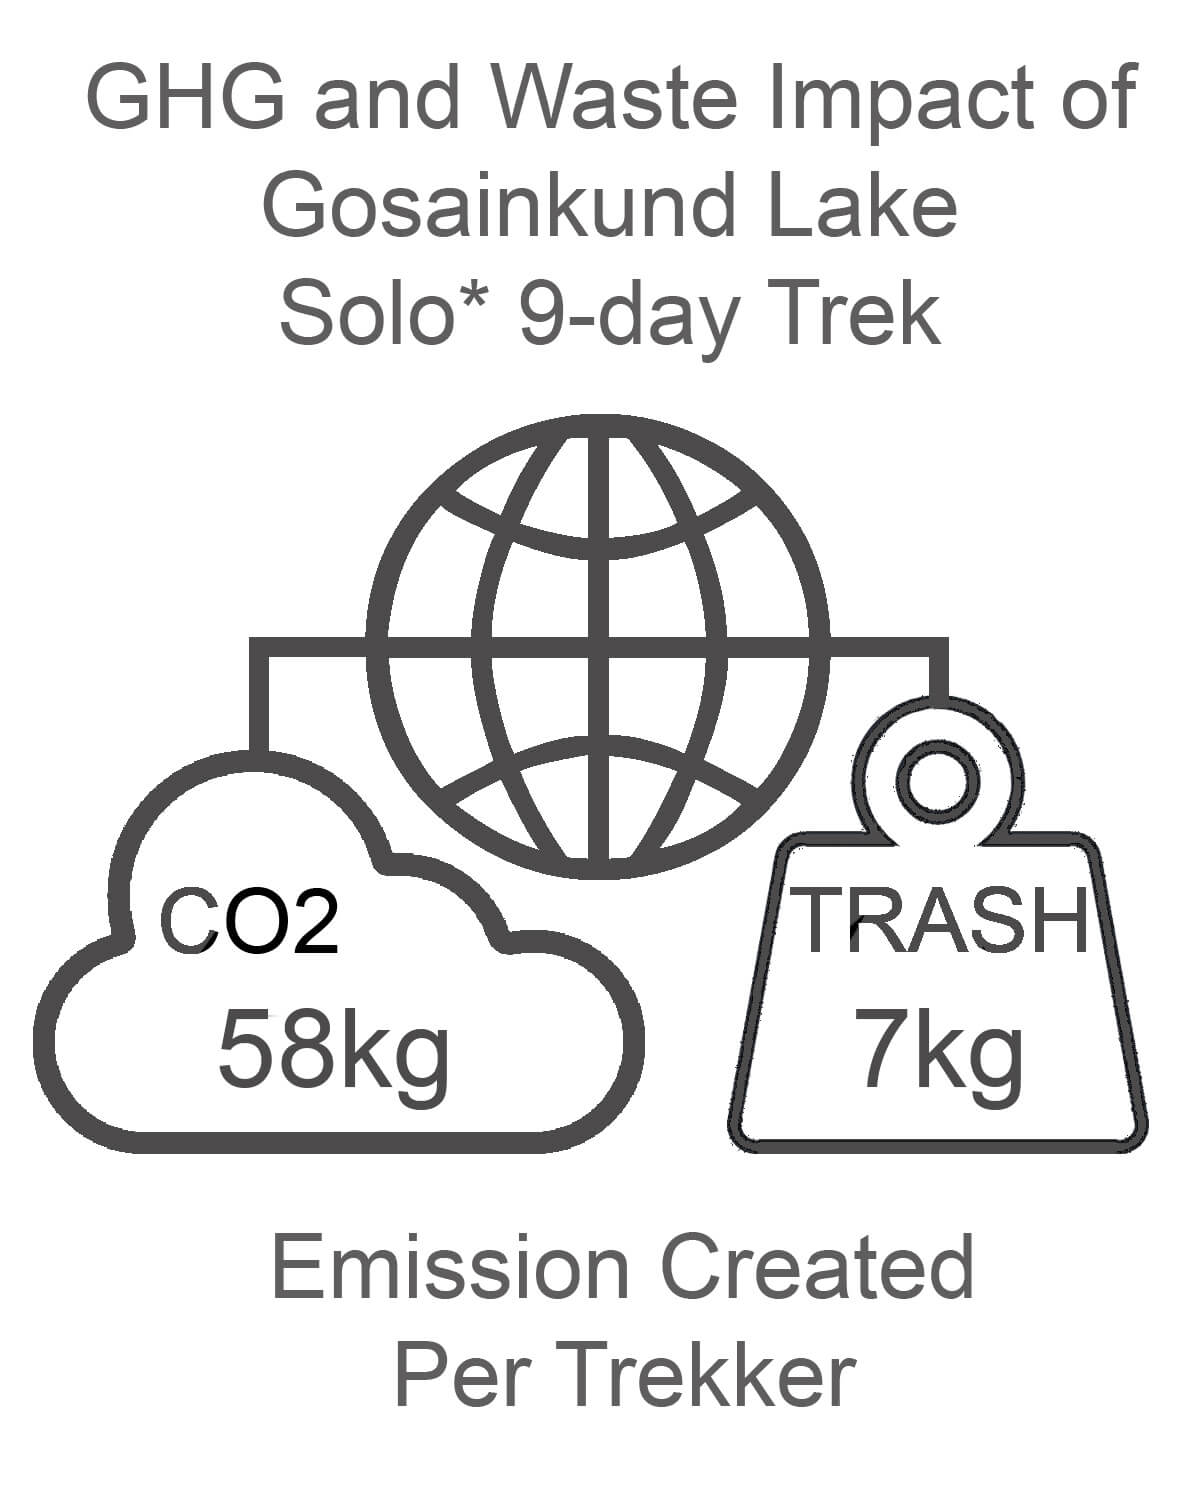 Gosainkund Lake GHG and Waste Impact SOLO